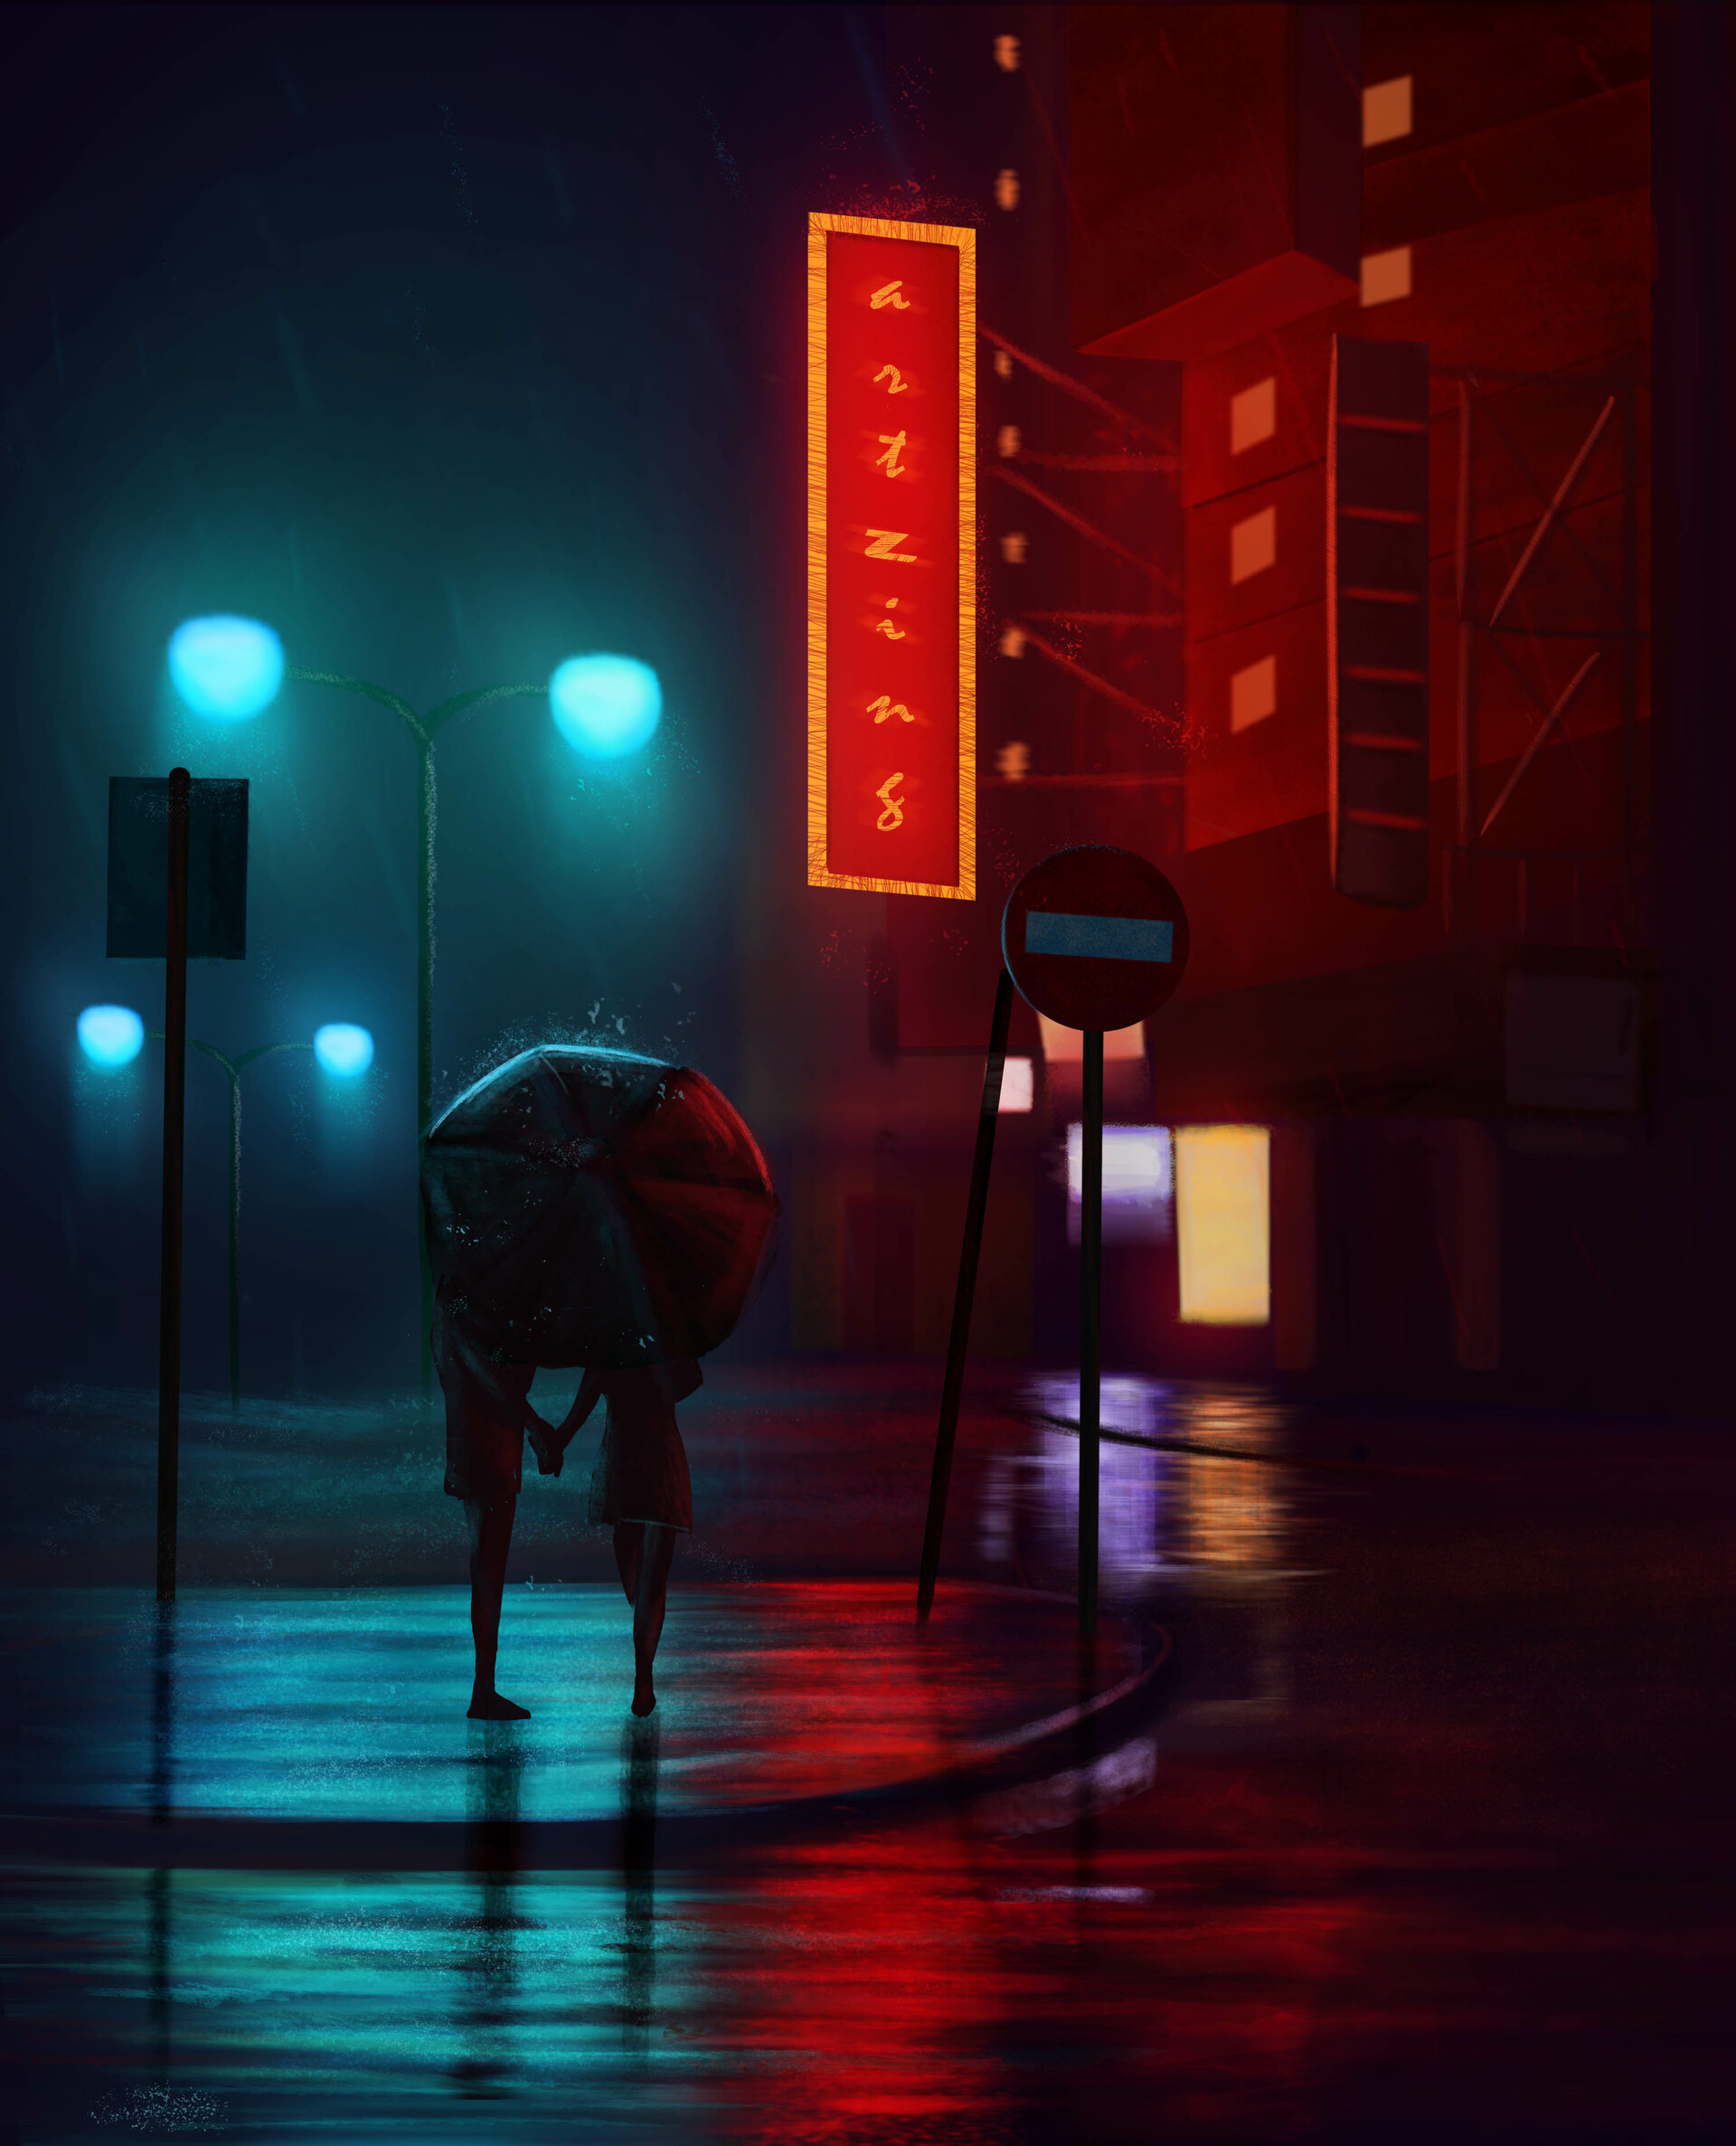 85571 Screensavers and Wallpapers Umbrella for phone. Download Art, Rain, Lights, Dark, Couple, Pair, Lanterns, Night City, Umbrella, Street pictures for free